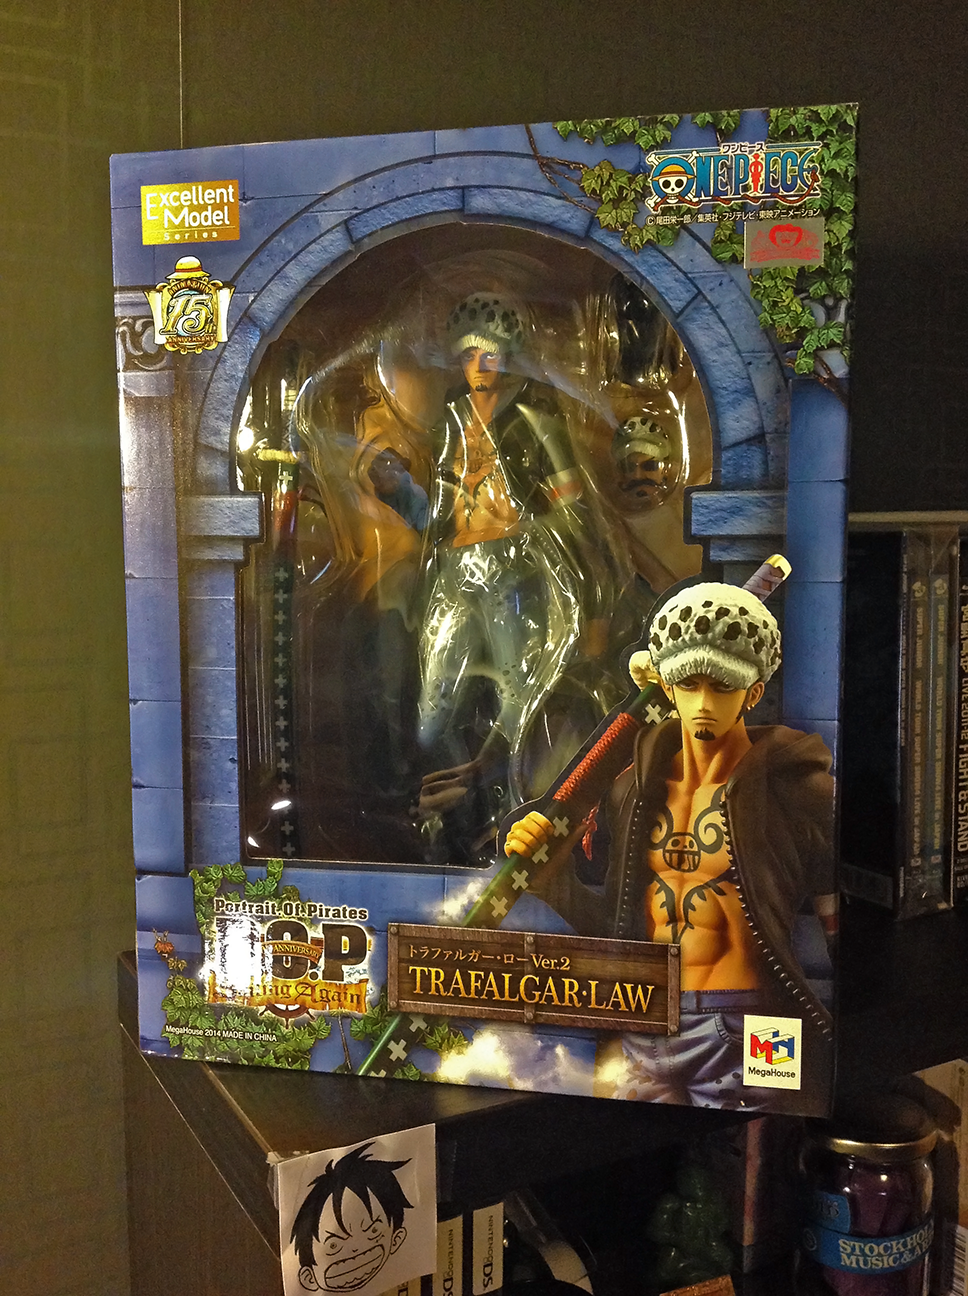 "megahouse one_piece excellent_model shueisha trafalgar_law oda_eiichiro toei_animation portrait_of_pirates_""sailing_again"" ishiyama_yuuki"